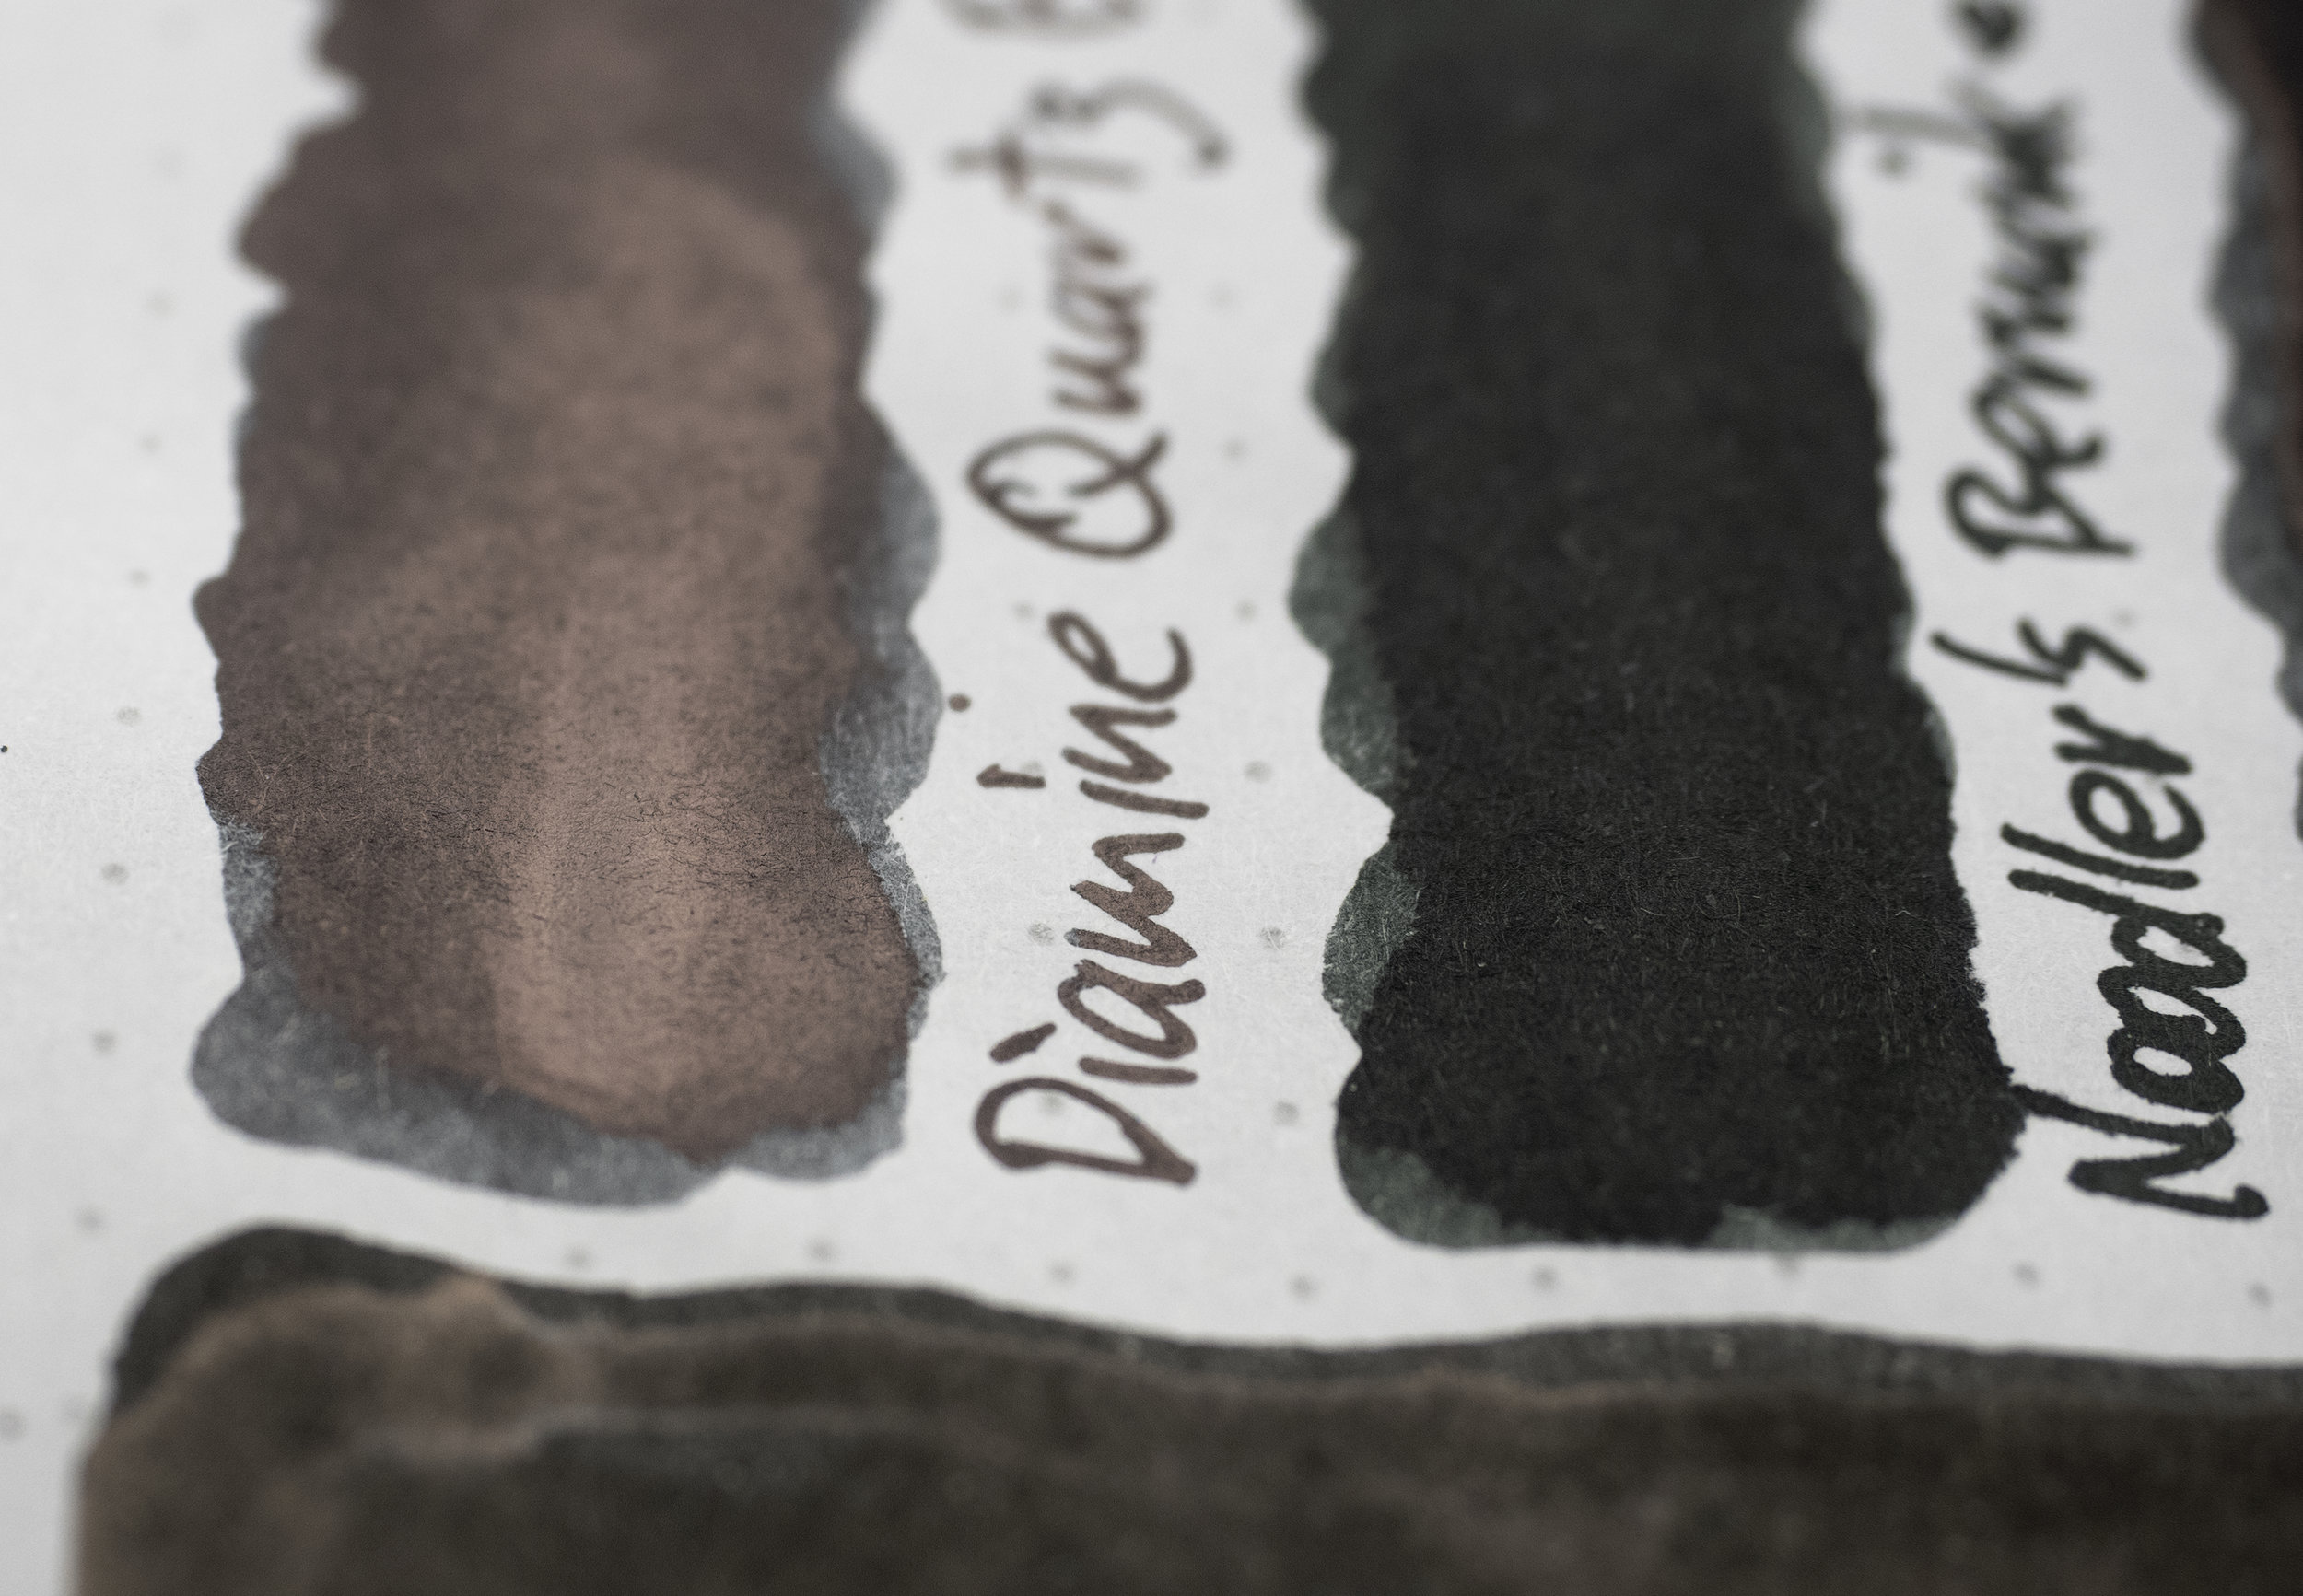 Sheen Diamine Quarts Black and Noodler's Bernanke Black